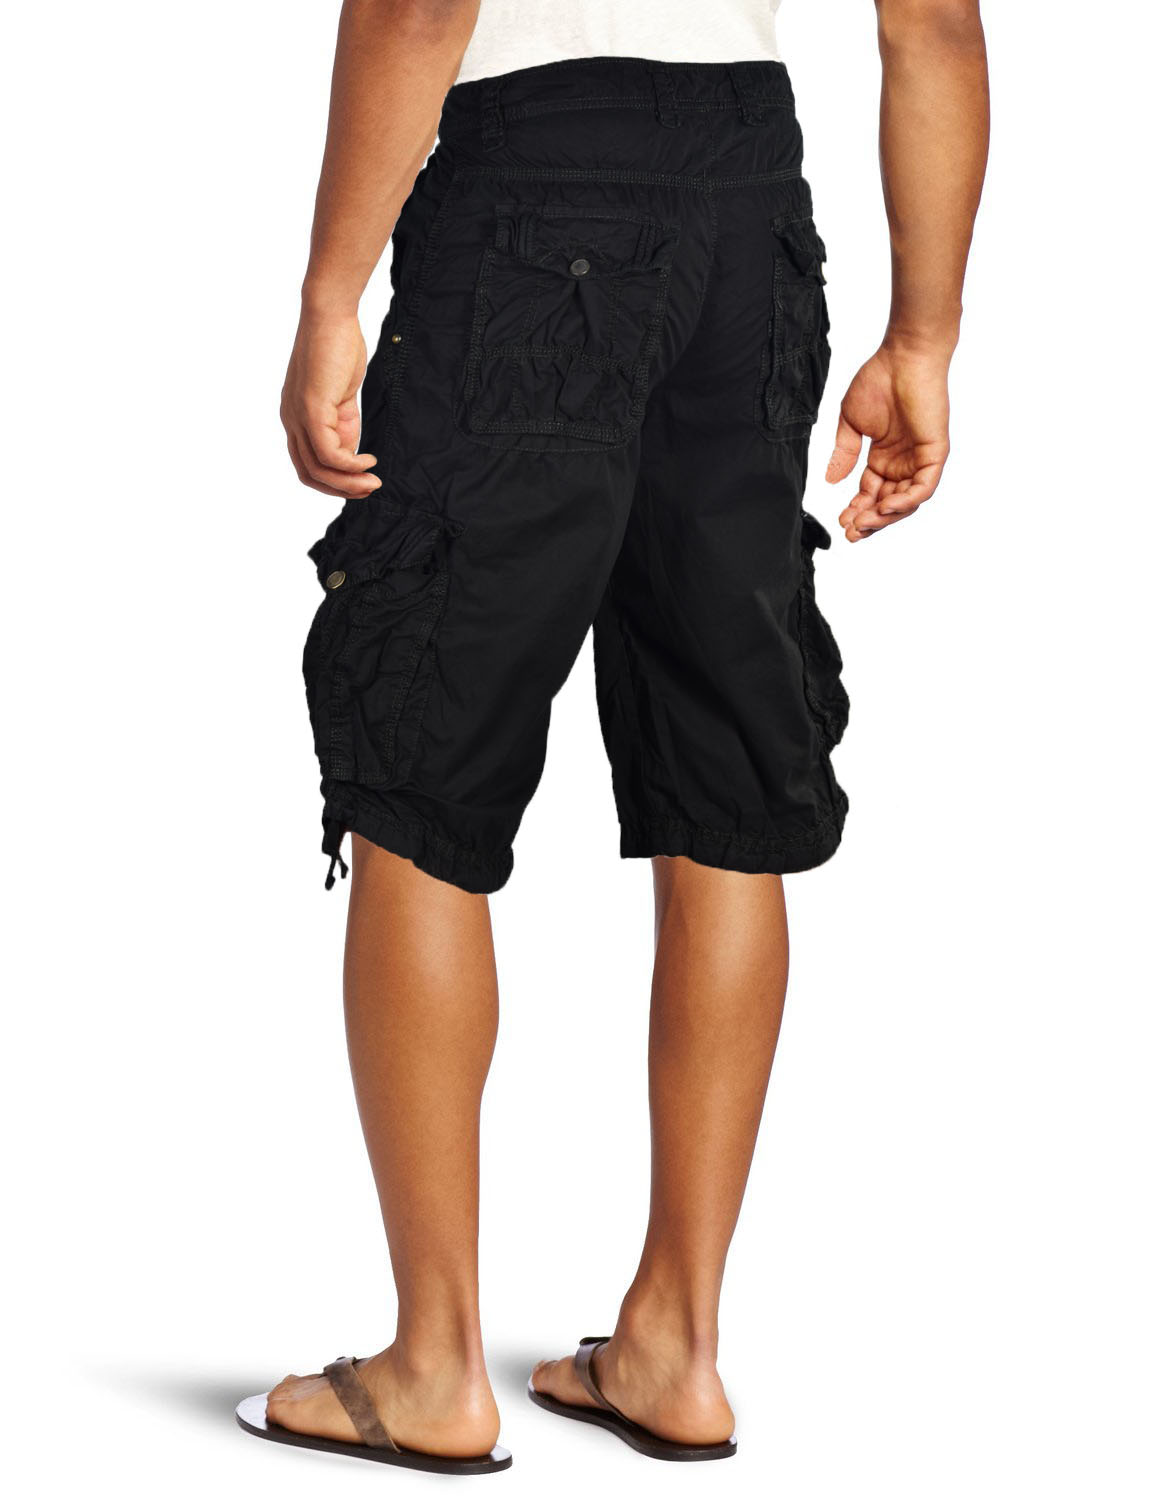 Wrangler Men's Black Cargo Shorts Cotton Relaxed Fit New 34 36 38 40 42 44 46 48 See more like this. Mens STEINTEX CARGO SHORTS CHARCOAL WASH MMA 32 34 36 38 40 42 BLACK LABEL. Mens Cargo Shorts with Belt 30 52 Twill Short Camo Pants Summer Multi Pocket IH. Brand New. $ Buy It Now. Free Shipping. 2,+ Sold.